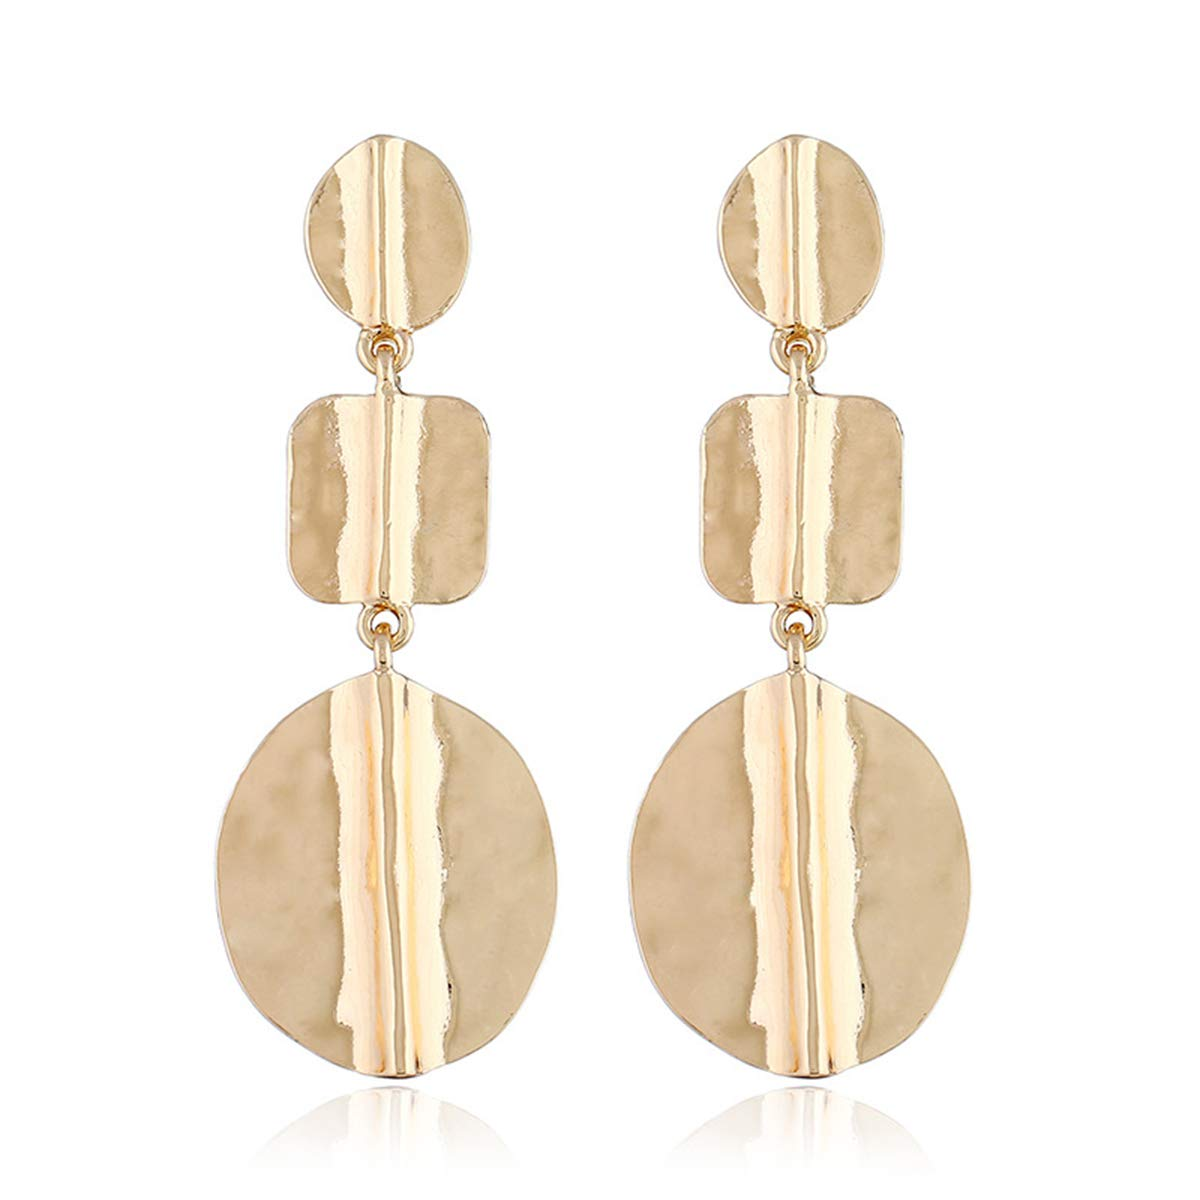 Helloriver Fashion Round Earrings Personality Atmosphere Street Stud Earrings